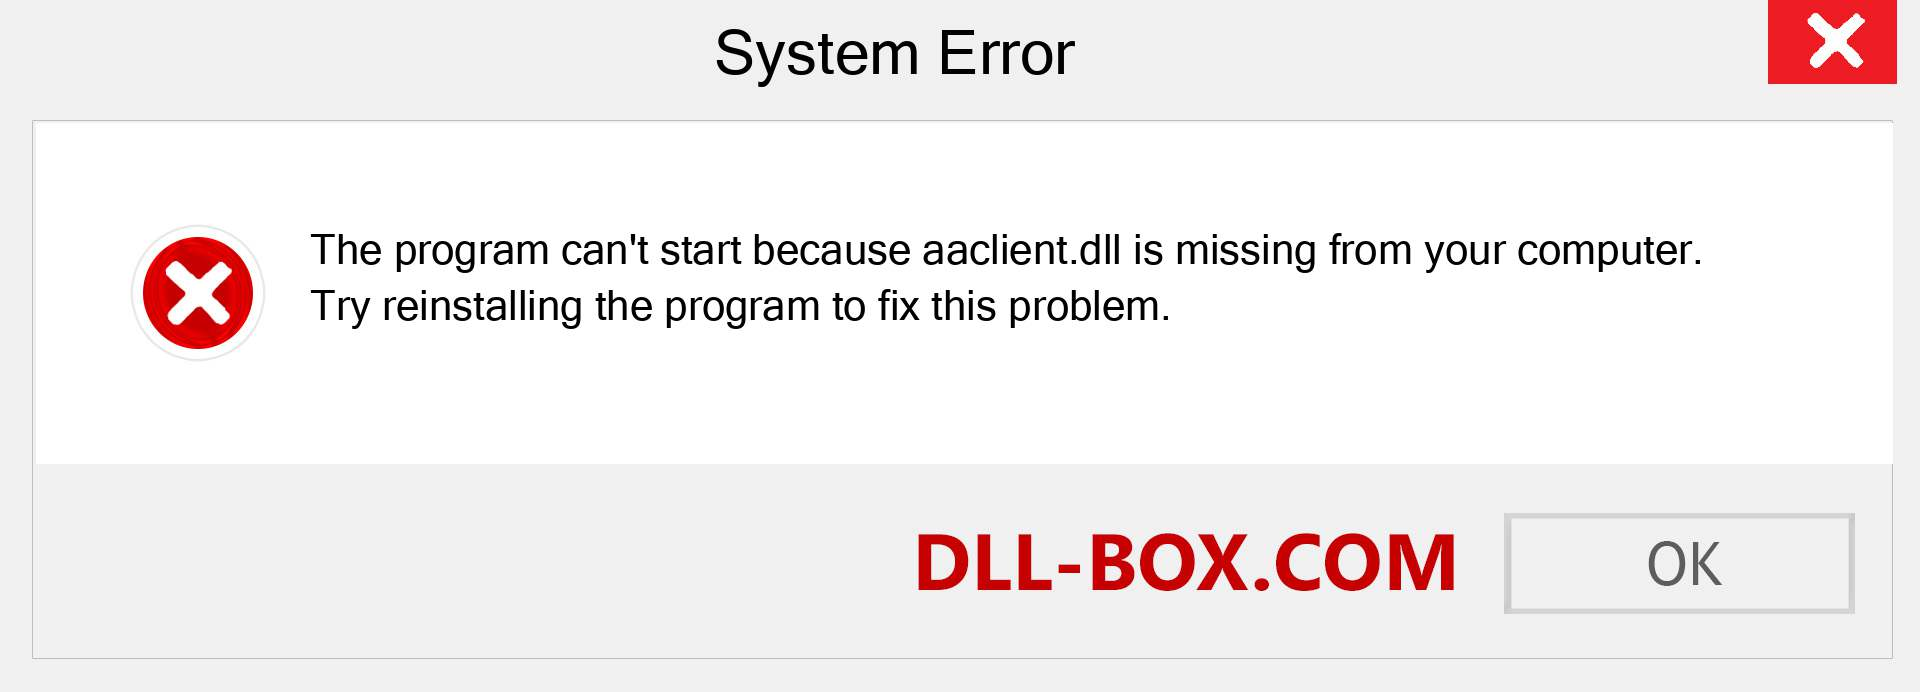 aaclient.dll file is missing?. Download for Windows 7, 8, 10 - Fix  aaclient dll Missing Error on Windows, photos, images